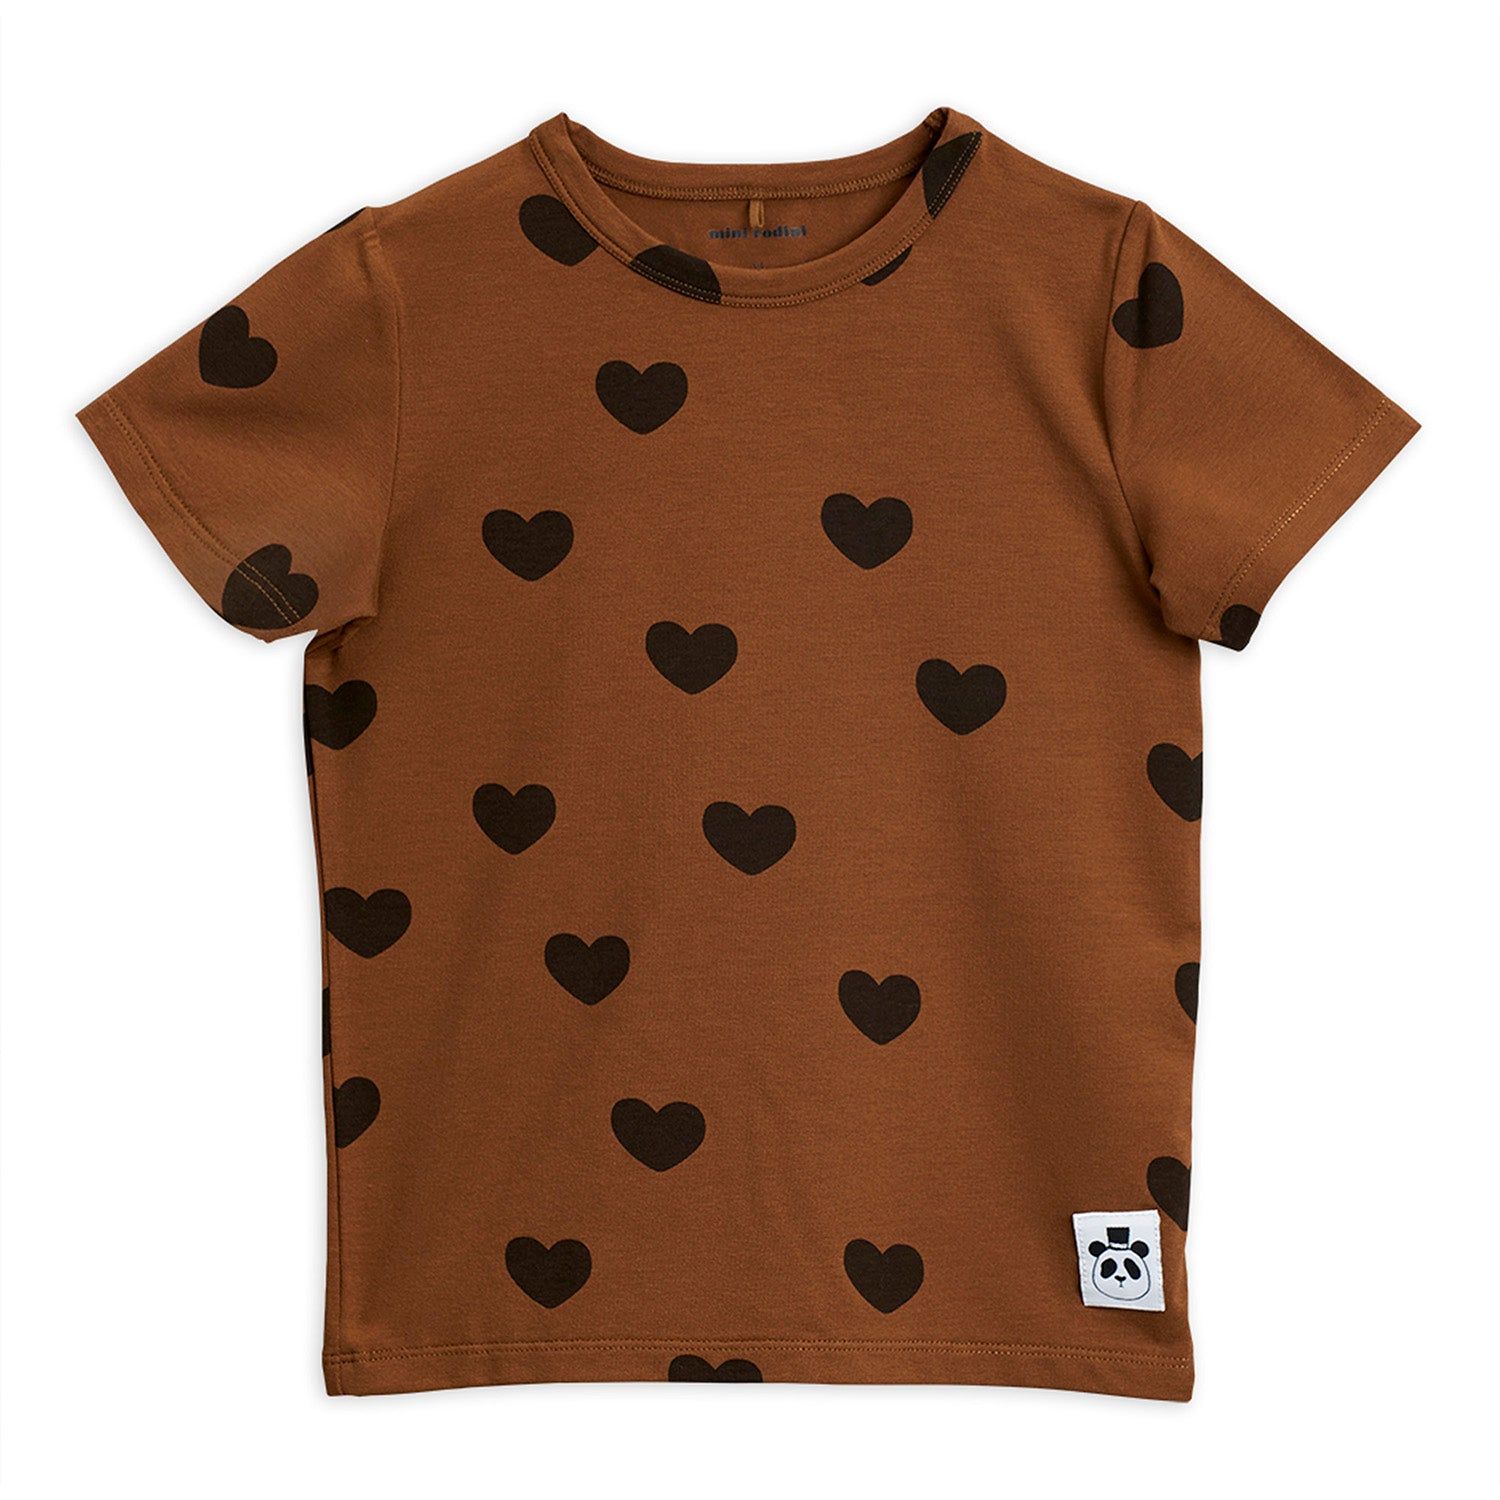 Mini Rodini hearts tee, brown